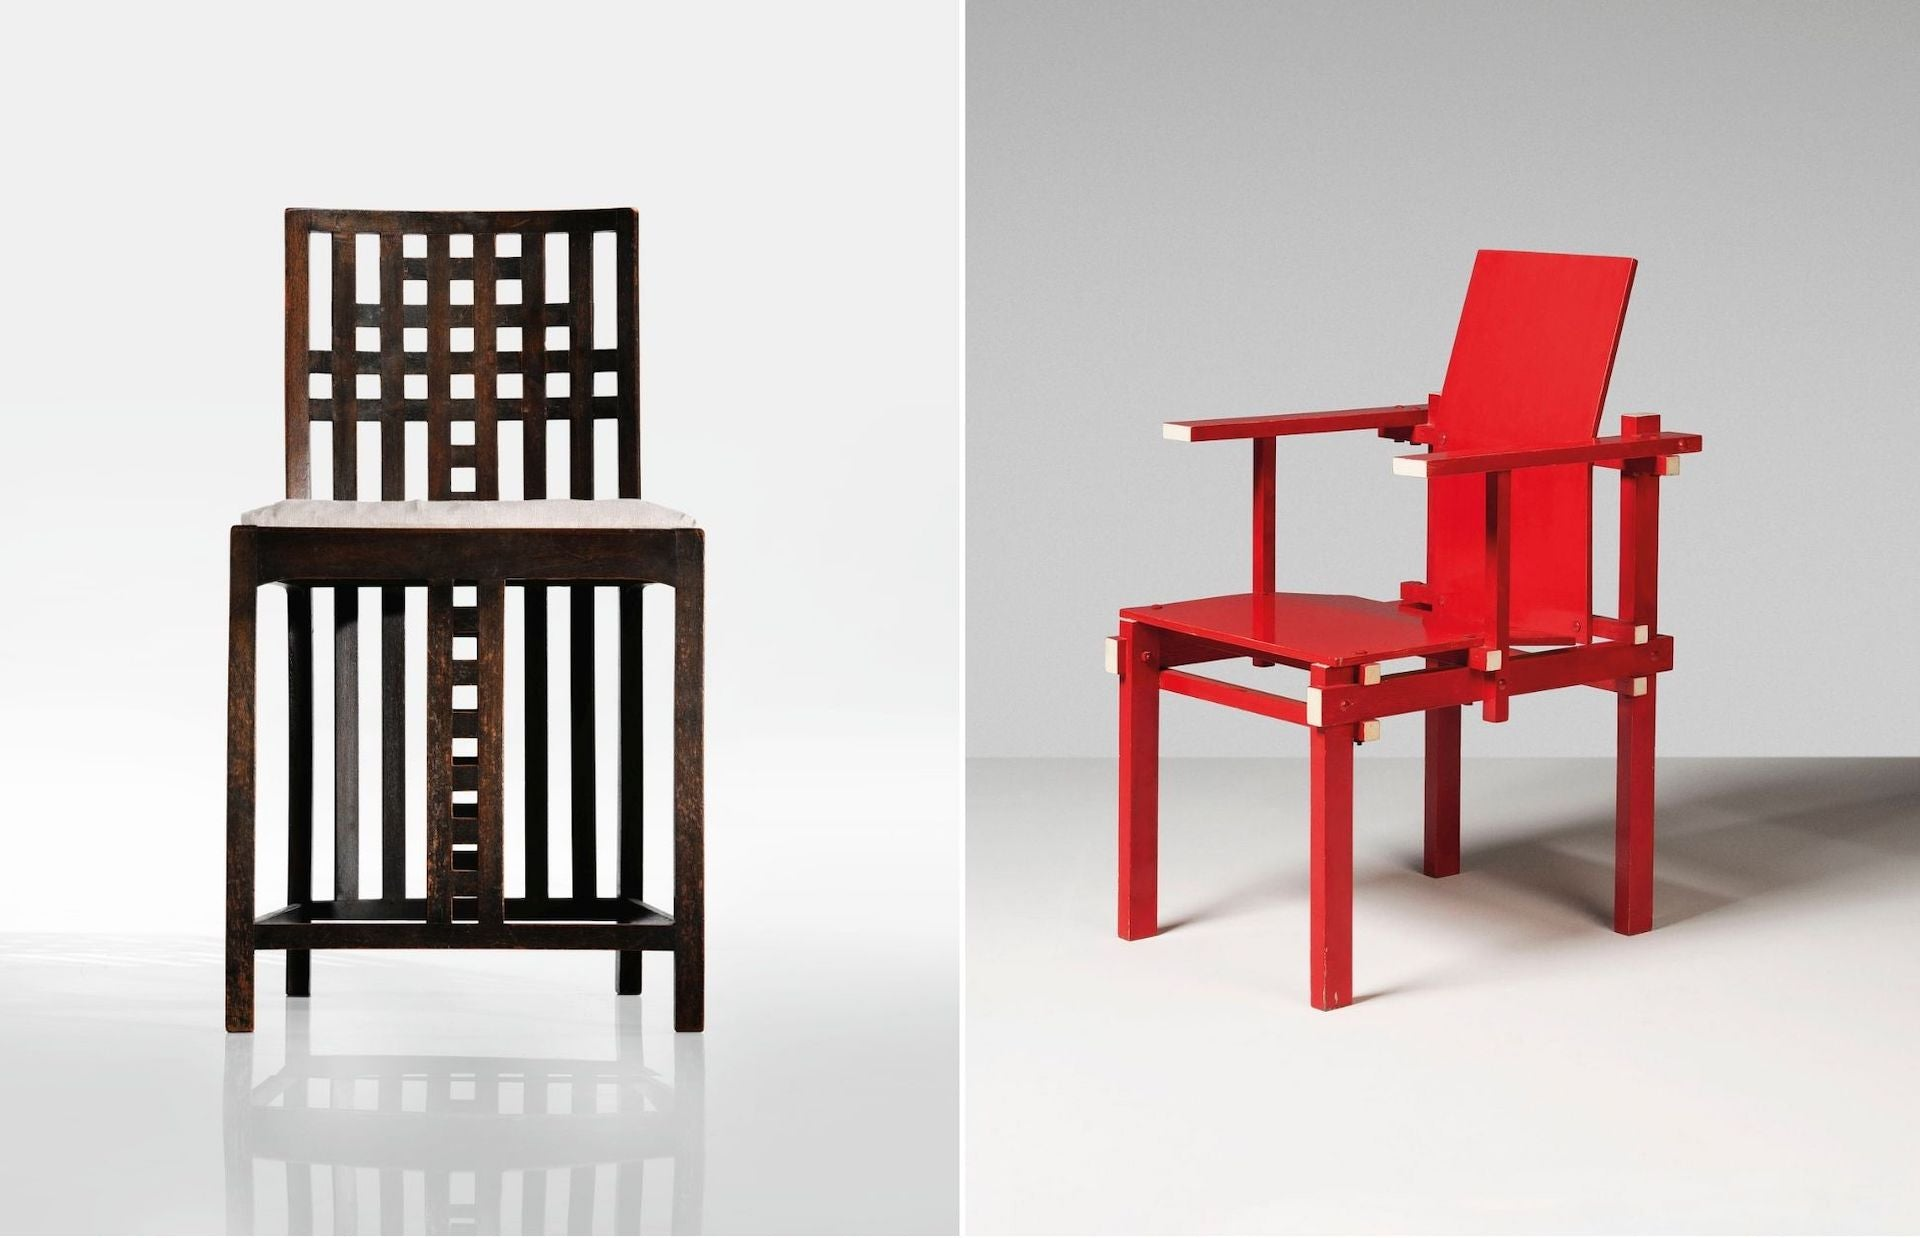 Left: Side Chair from the White Bedroom by Charles Rennie Mackintosh, c. 1904. Sold at Sotheby's in 2017 for $576,500. Photo © Sotheby's. Right: Armchair by Gerrit Rietveld, designed 1925, produced c. 1962-1964. Sold at Christie's in 2019 for £25,000. Photo © Christie's